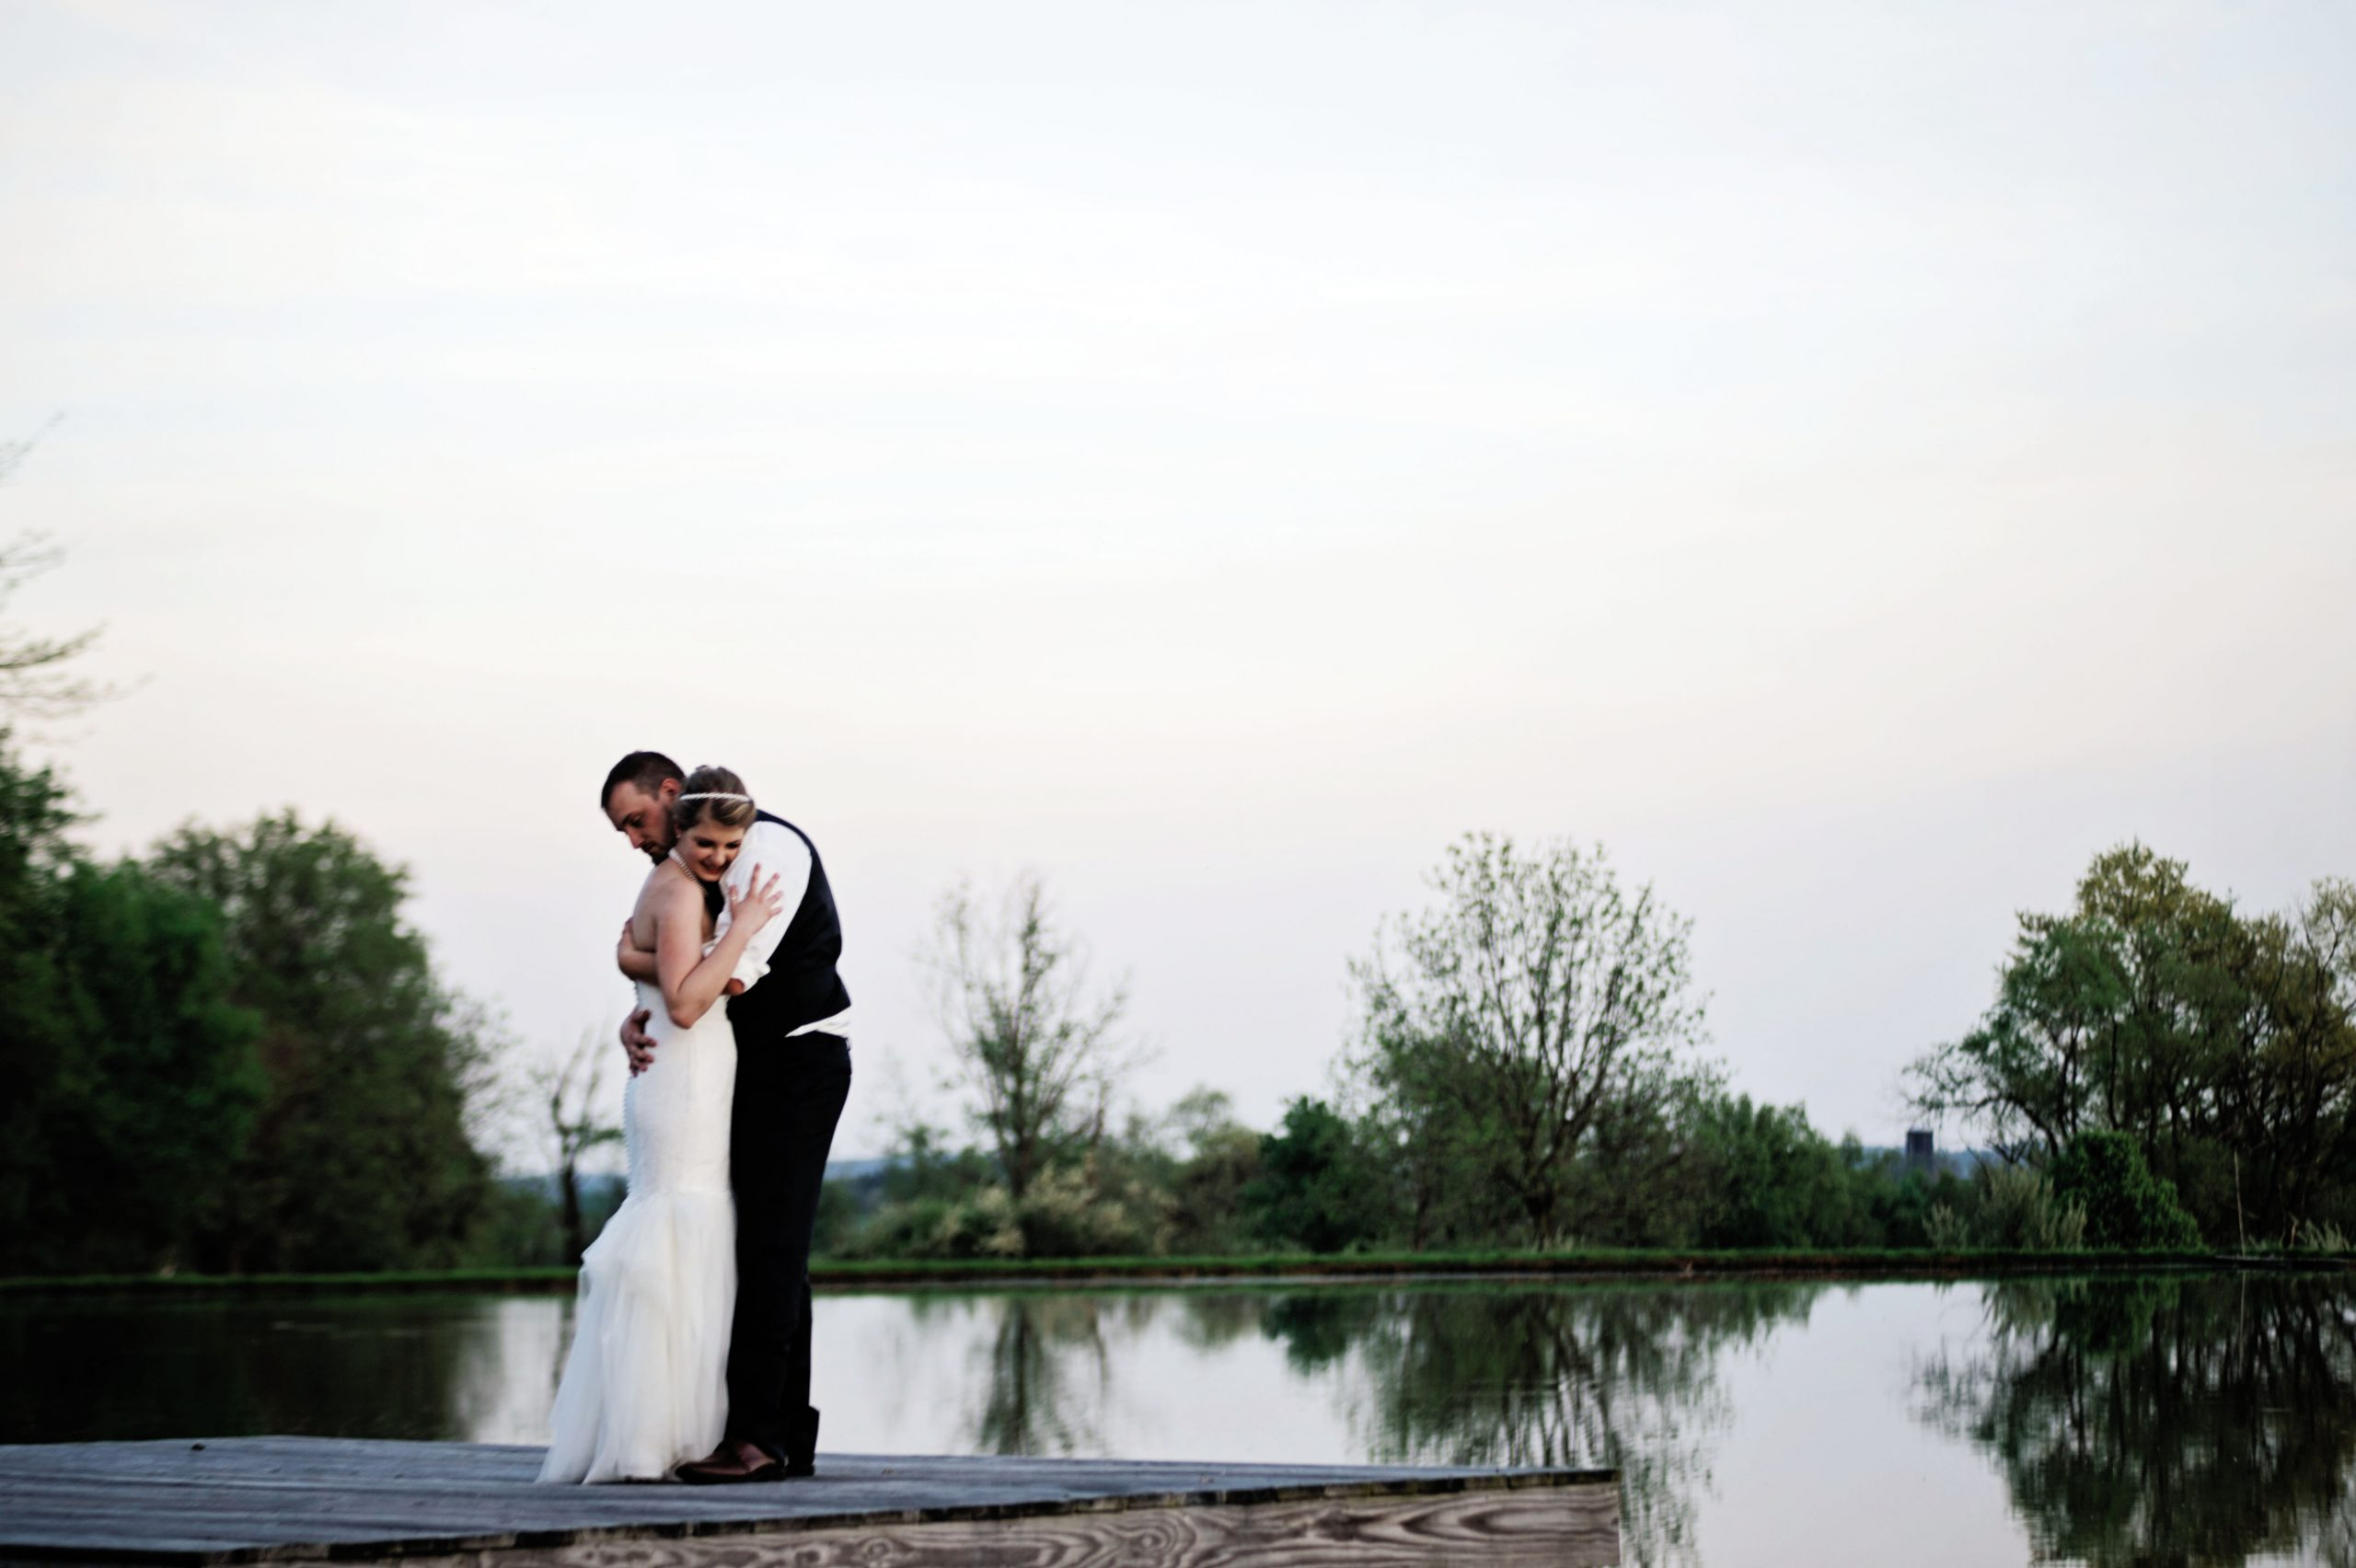 Newly wedded couple, Kady and Ricky, embrace each other on the dock at Lakeview Farms in York, PA. Lovefusion had the privilege of photographing this Spring classic romantic celebration. Featured on Dream Weddings.